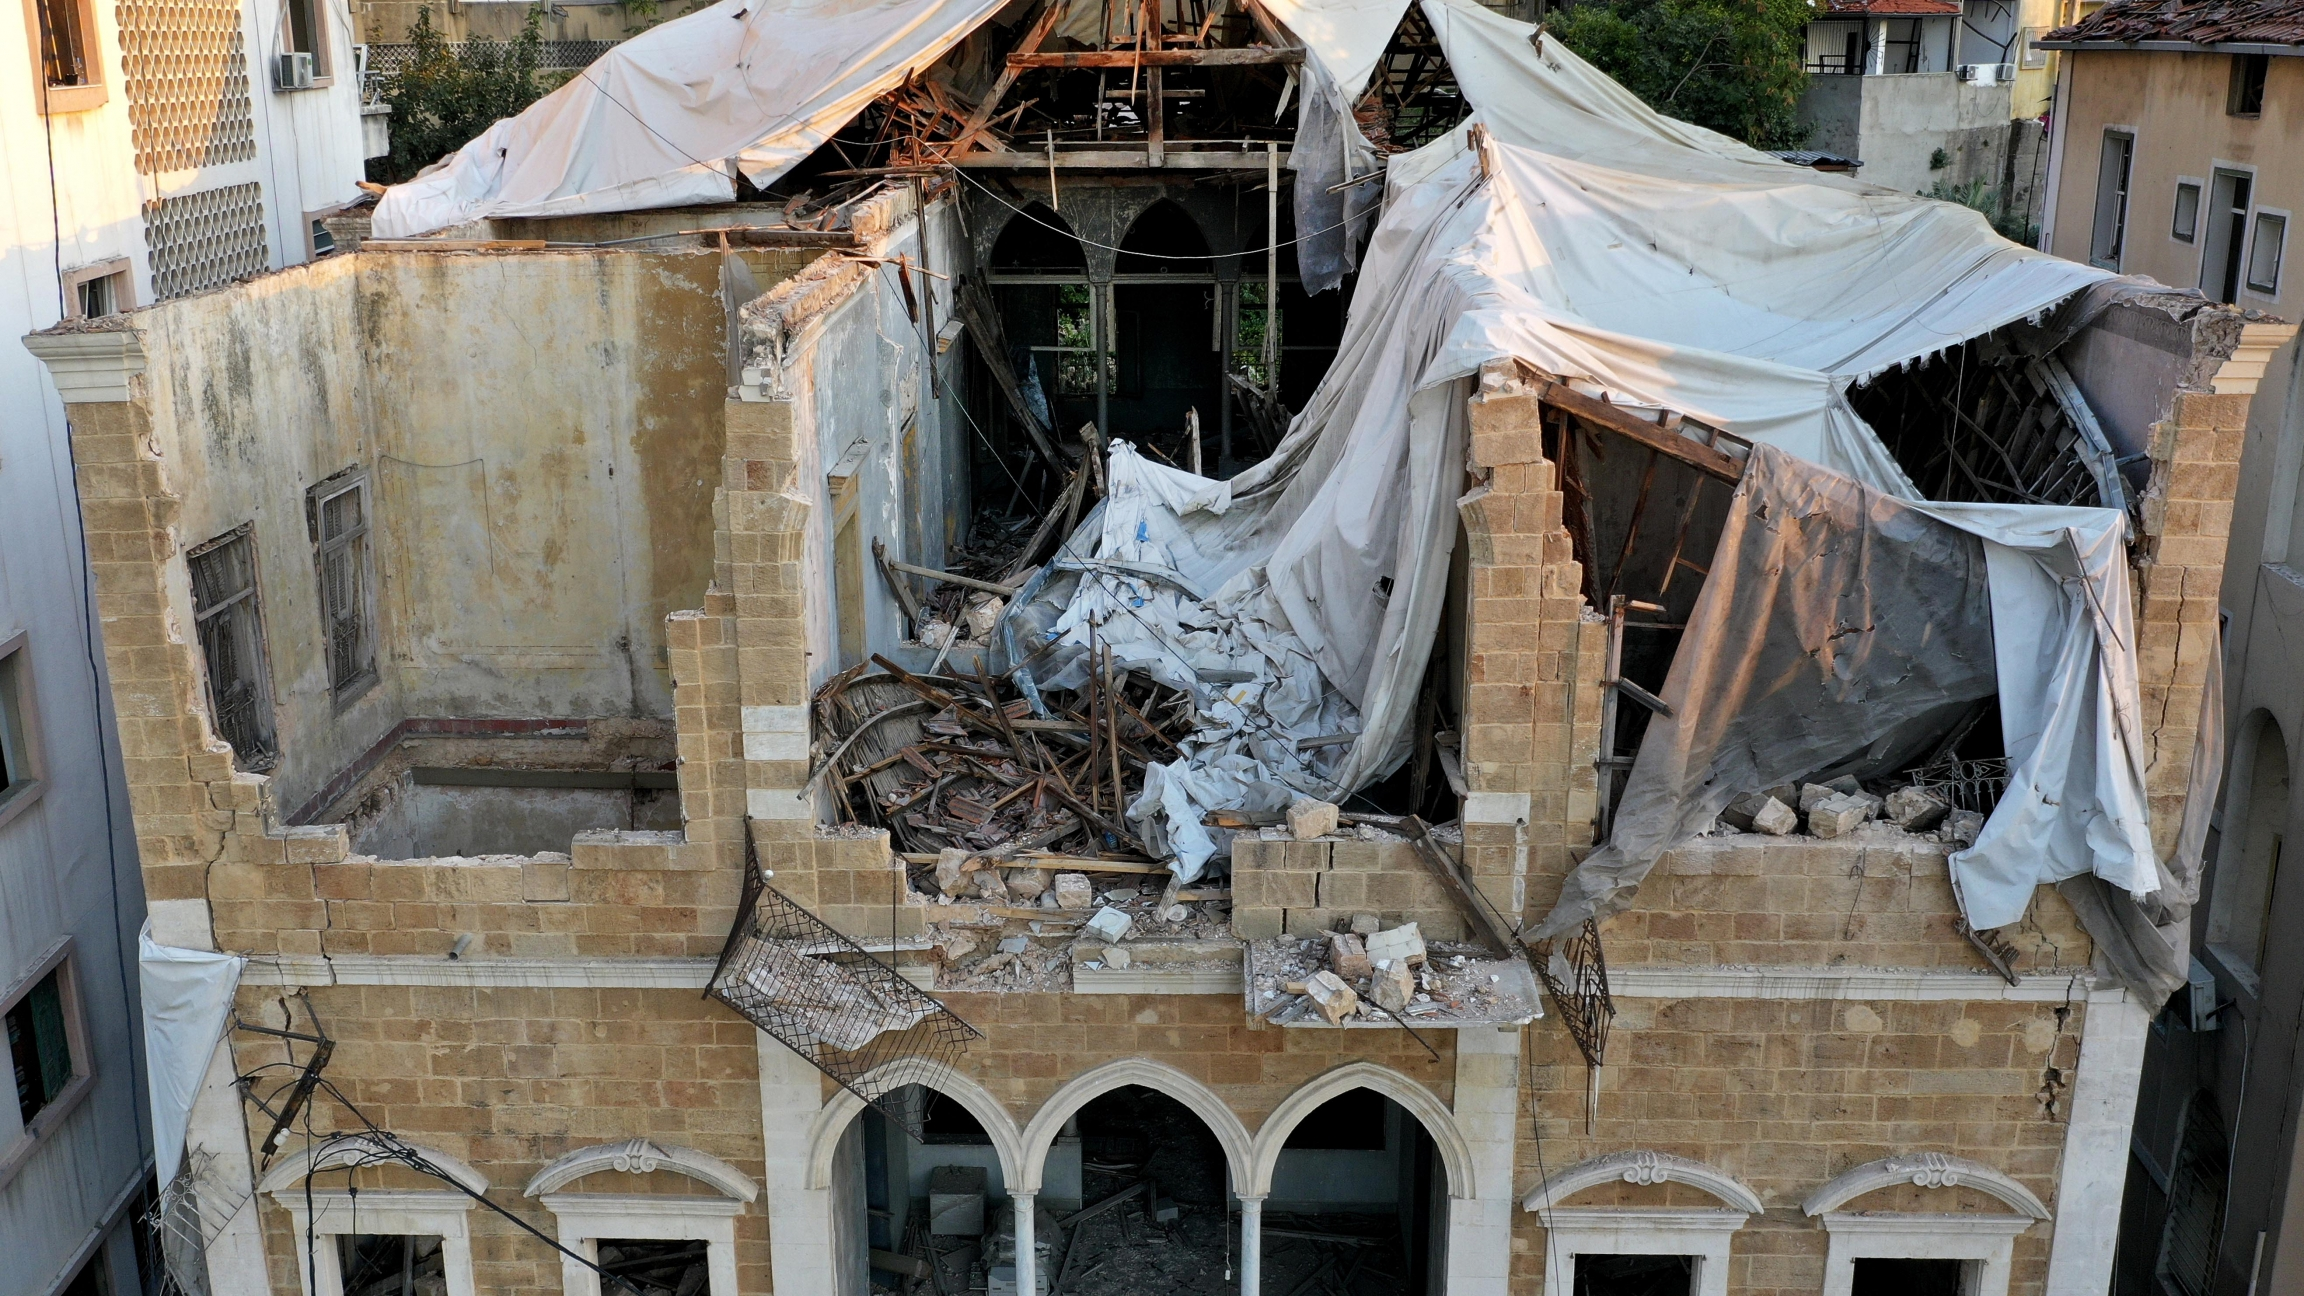 A heritage house that was destroyed by Aug. 4 explosion that hit the seaport of Beirut, Lebanon, Aug. 24, 2020.